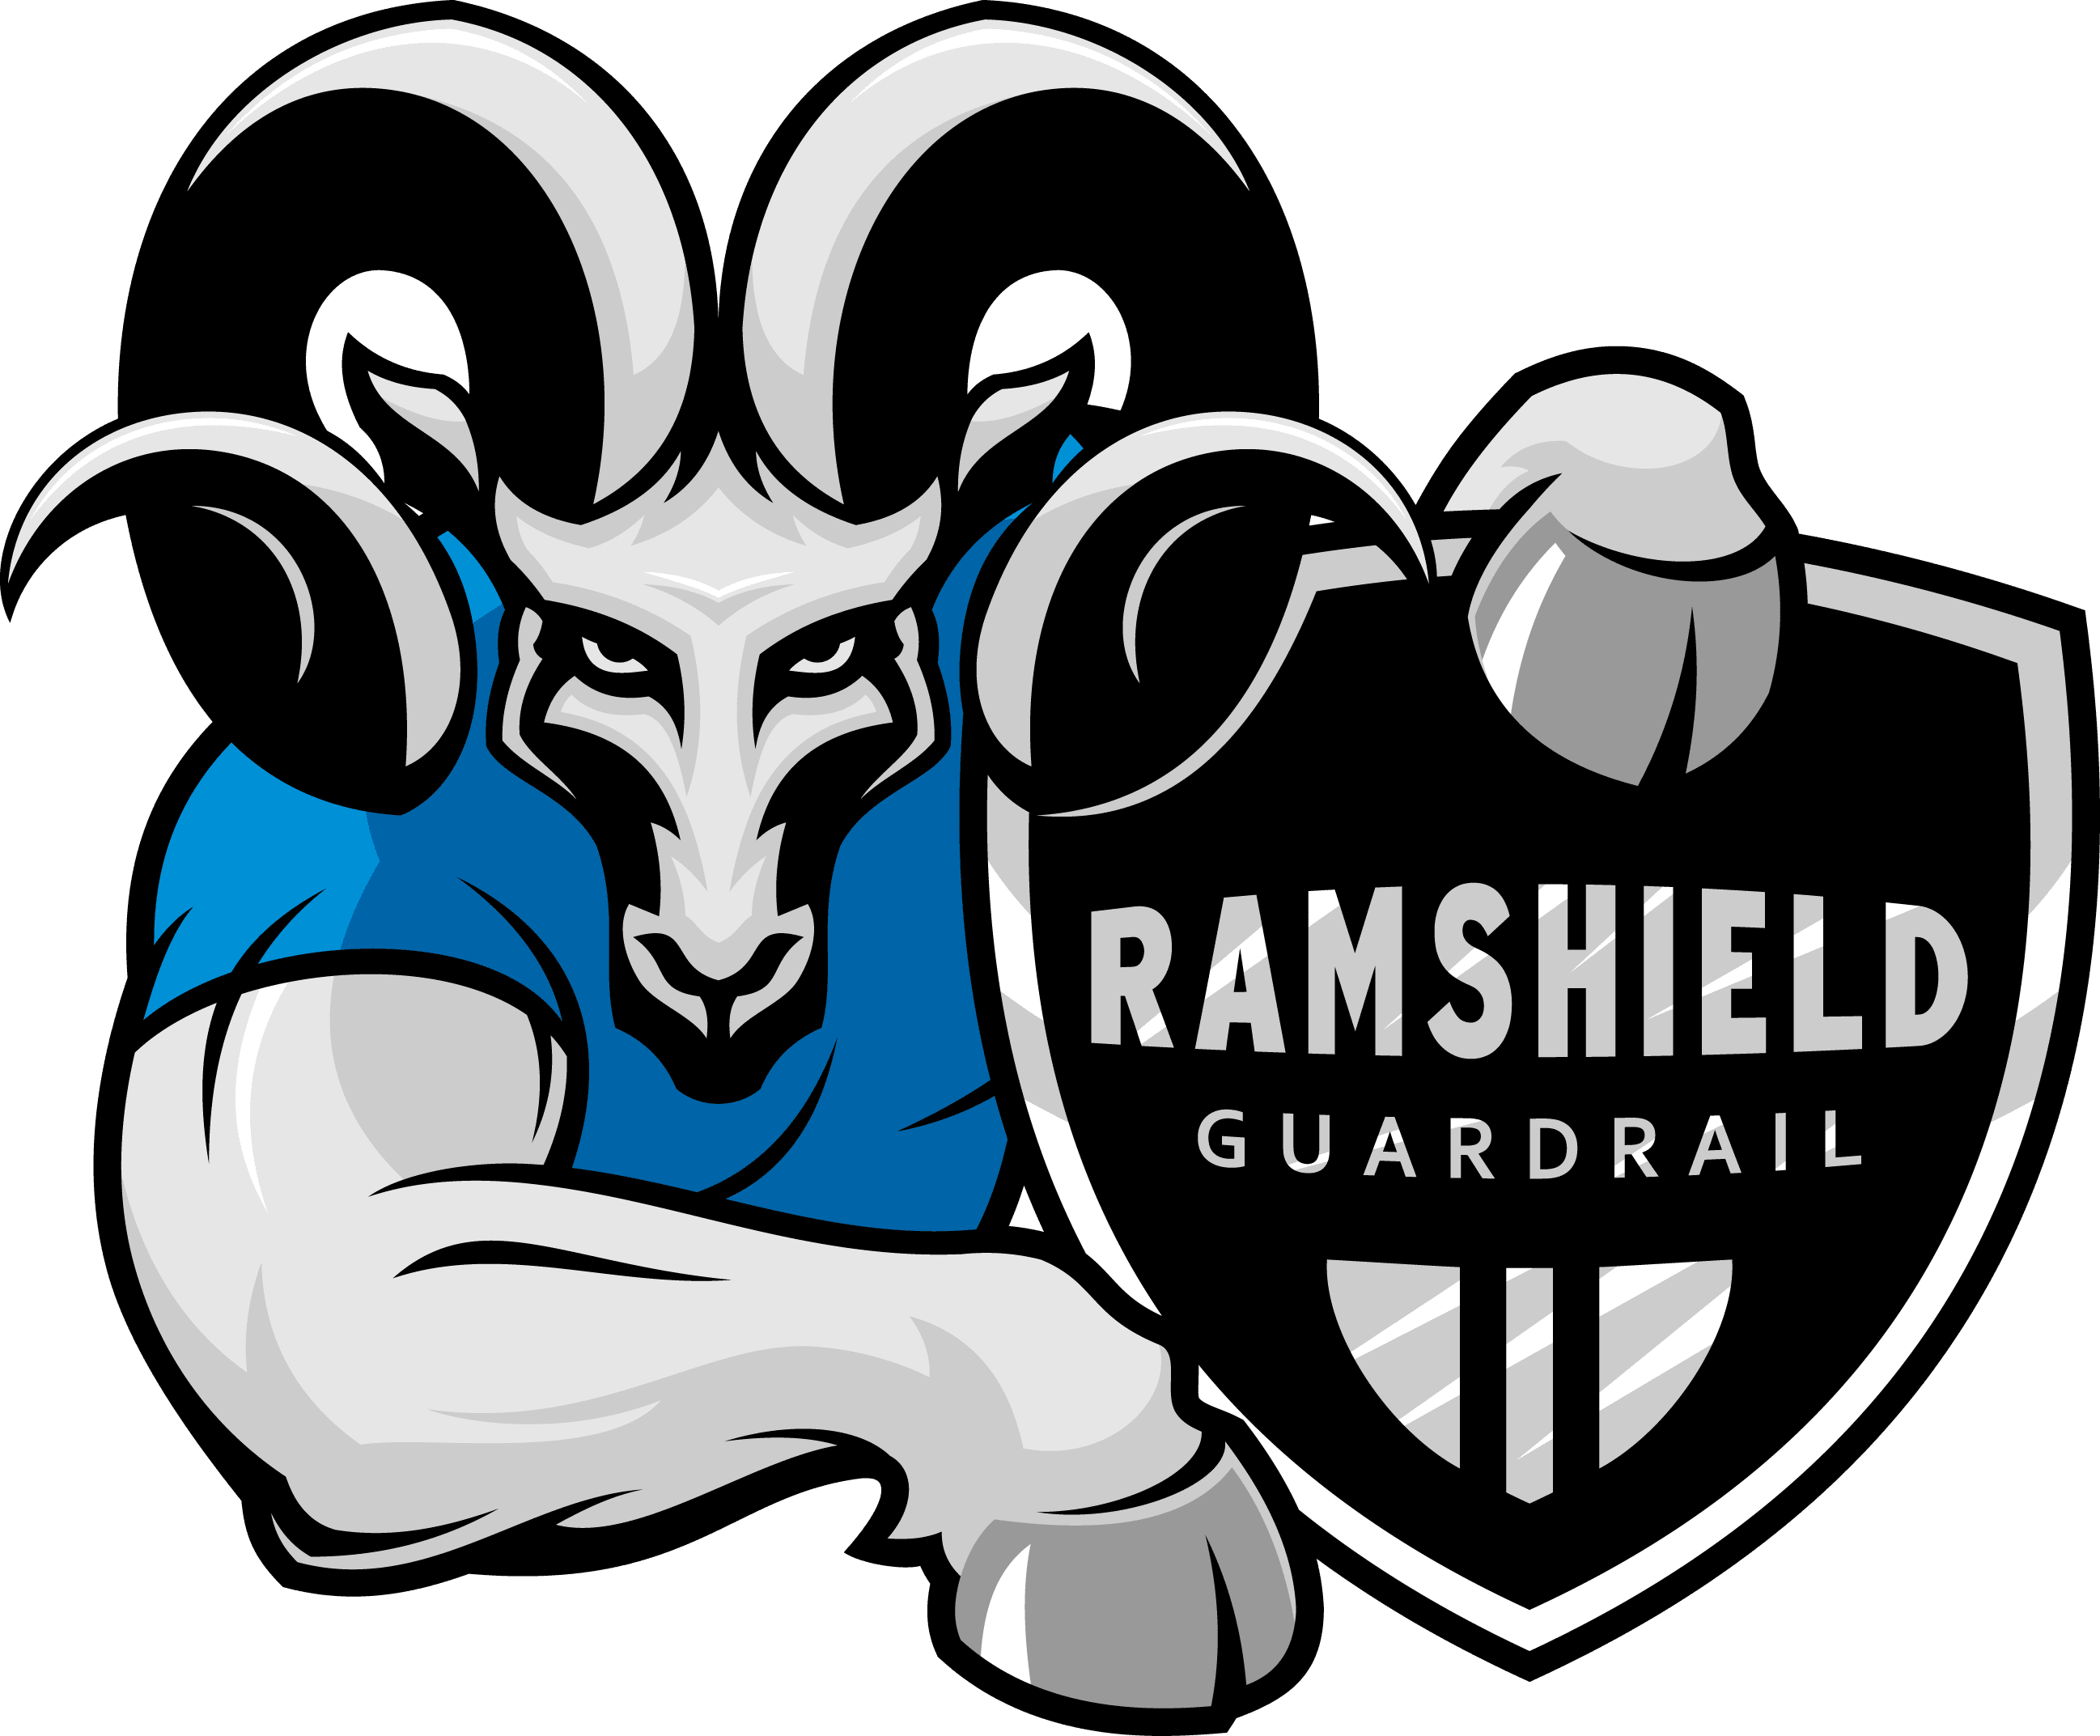 ramshield guardrail